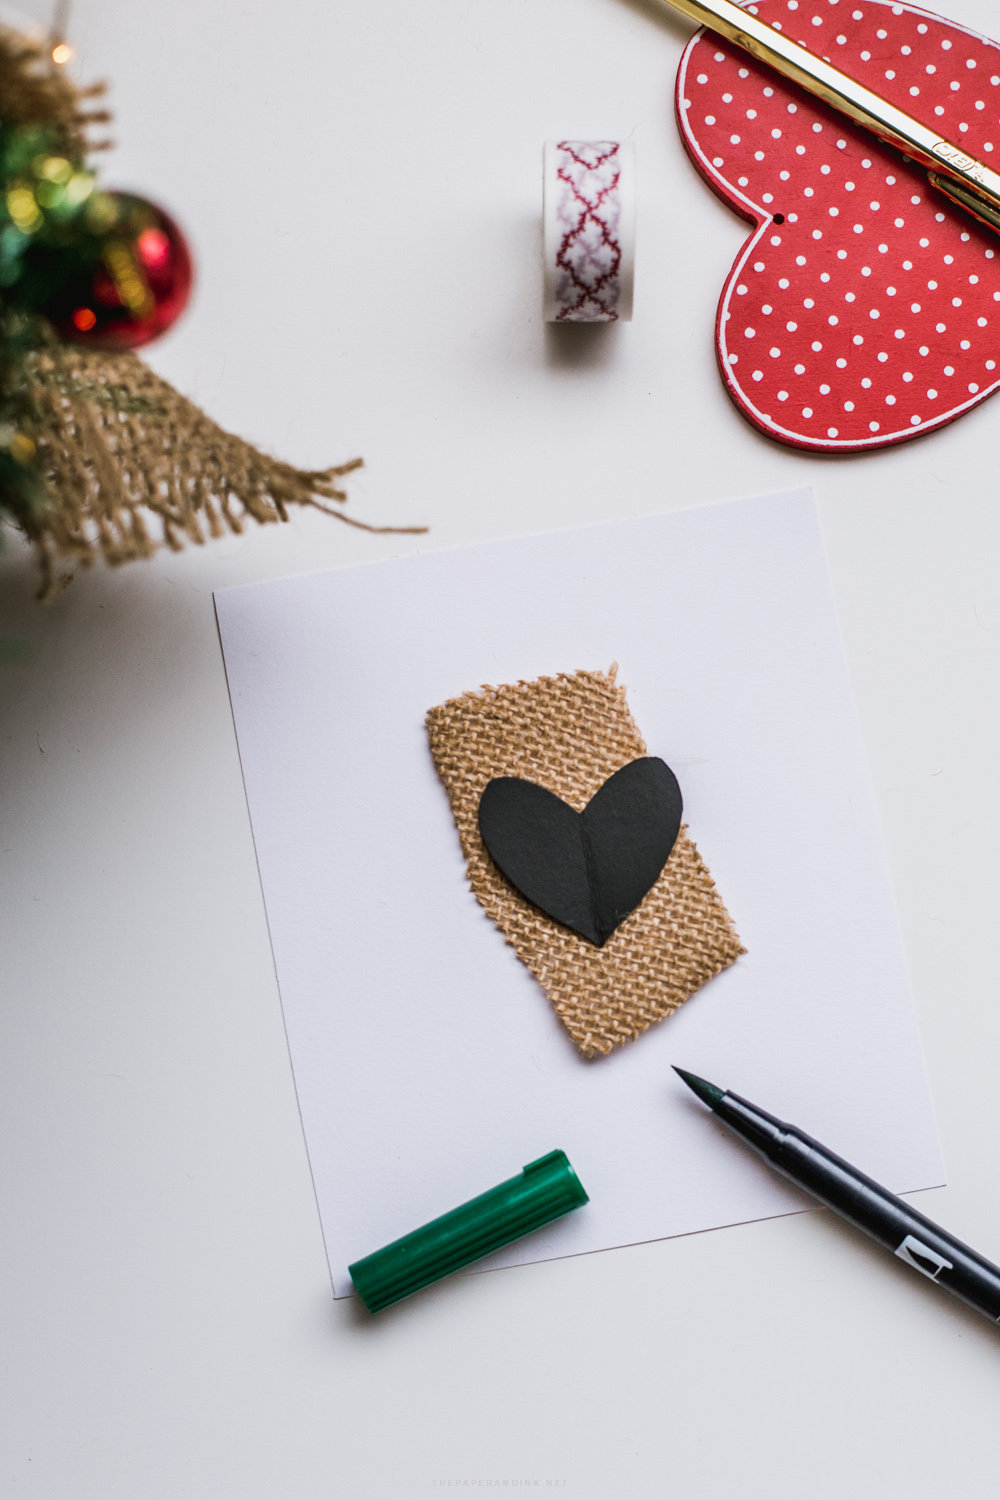 Christmas Card DIY: the heart over burlap holiday card